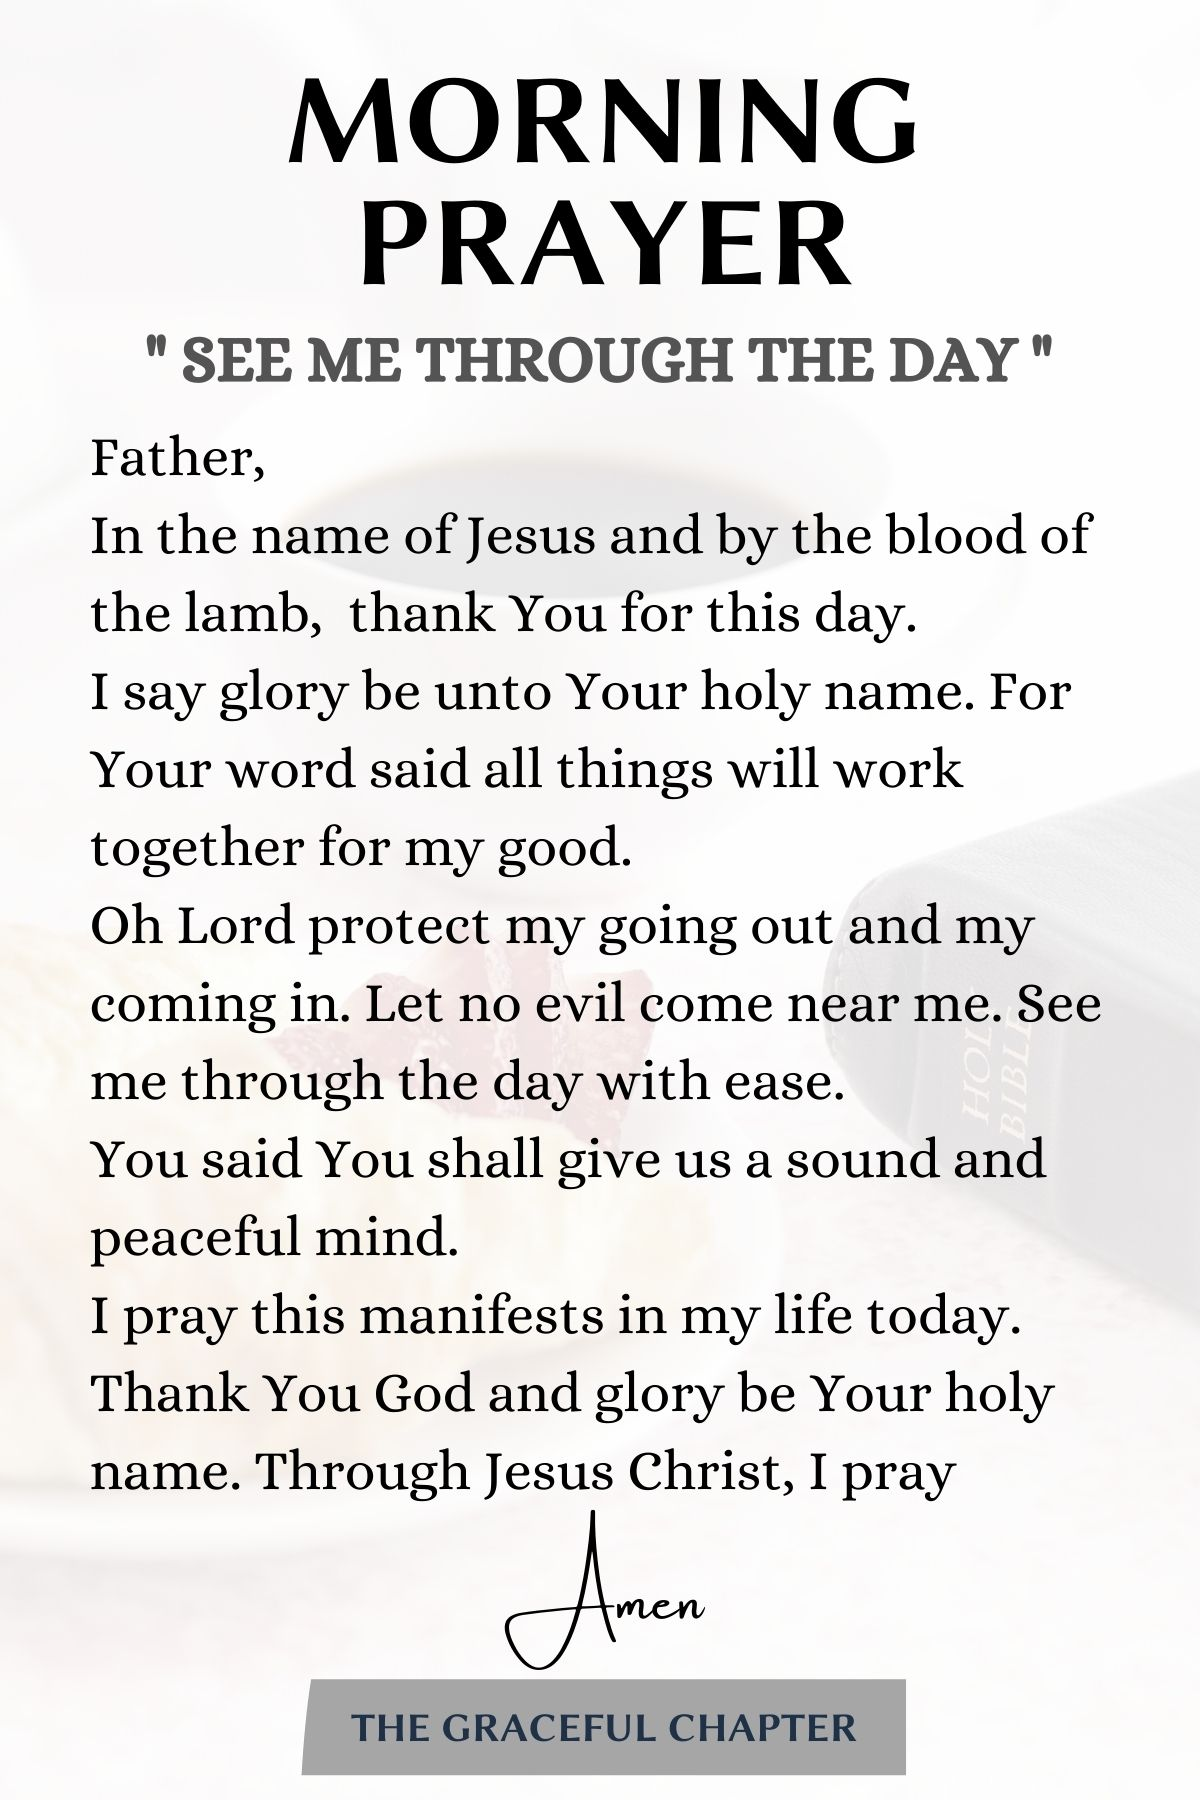 morning prayer- see me through the day